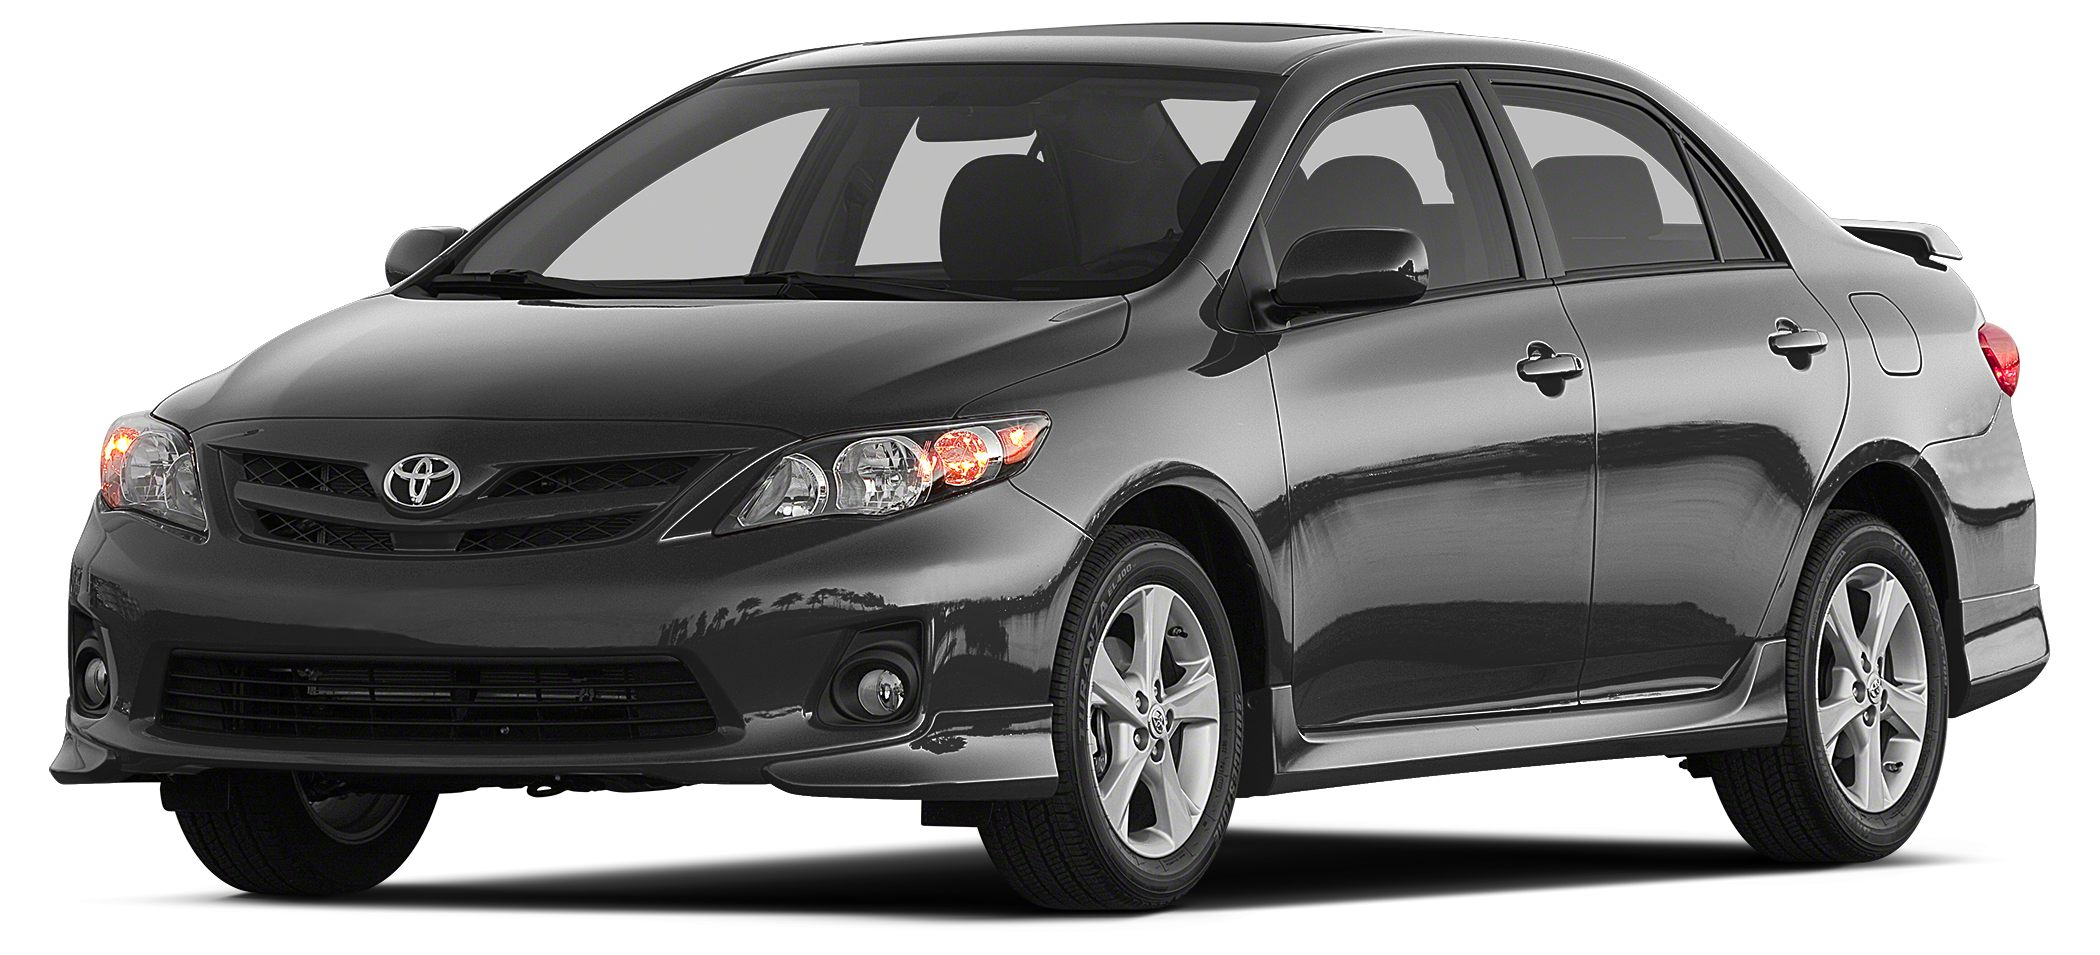 2013 Toyota Corolla S FUEL EFFICIENT 34 MPG Hwy26 MPG City S trim CARFAX 1-Owner Moonroof Blu